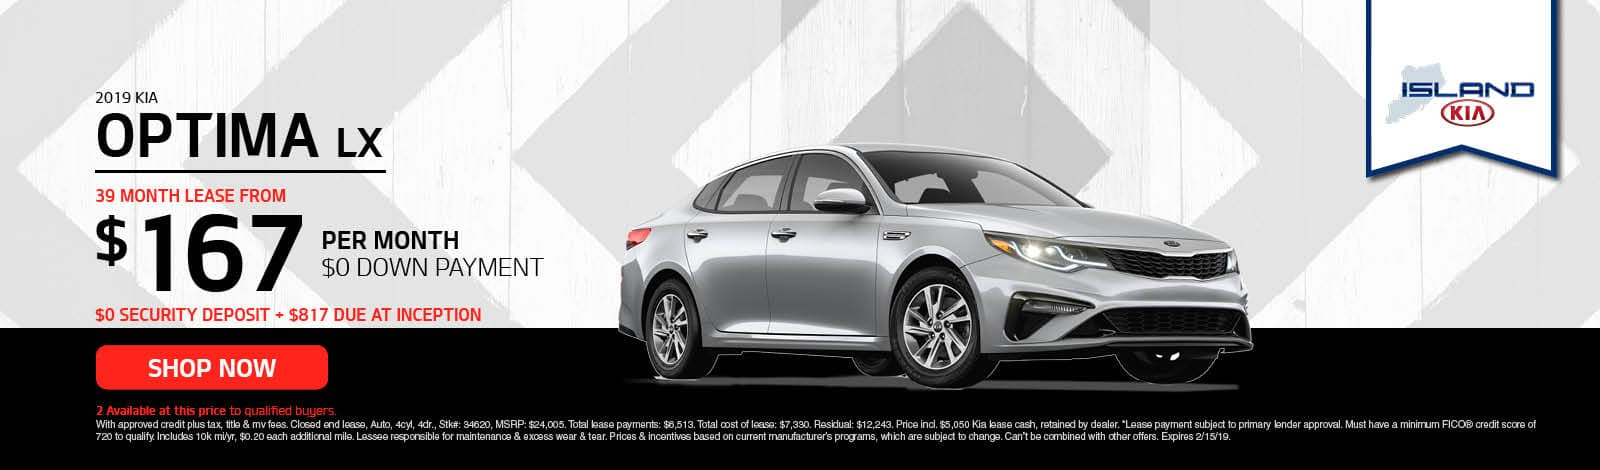 kia optima lease special